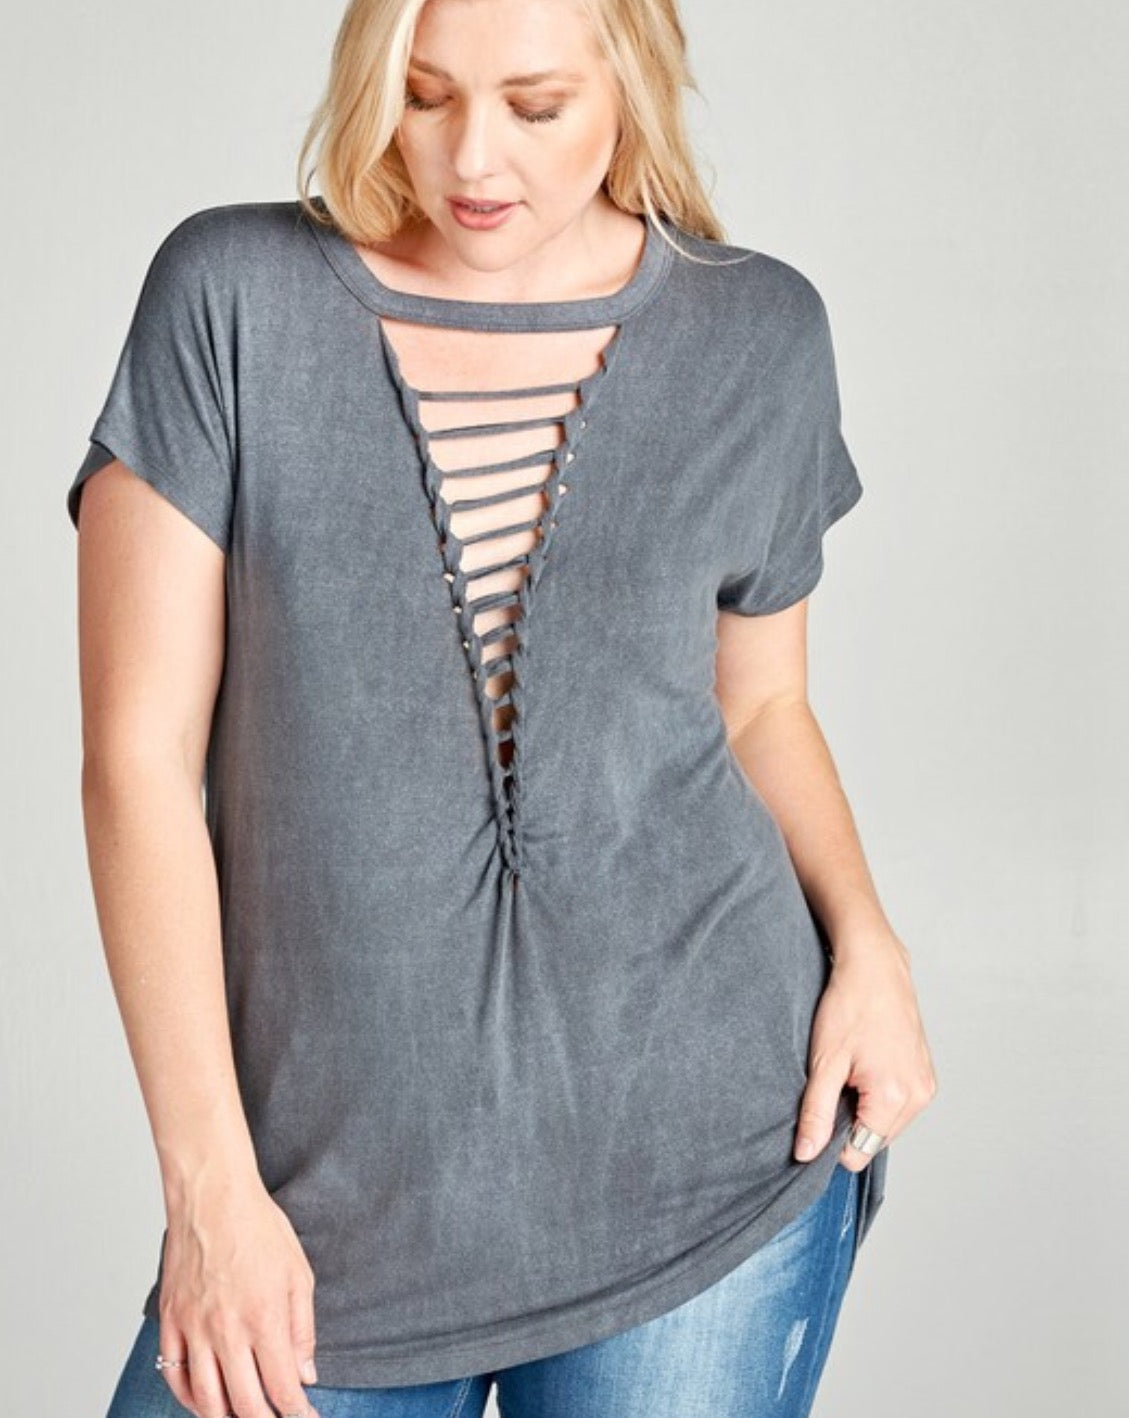 Washed Jersey Knit Top - Charcoal